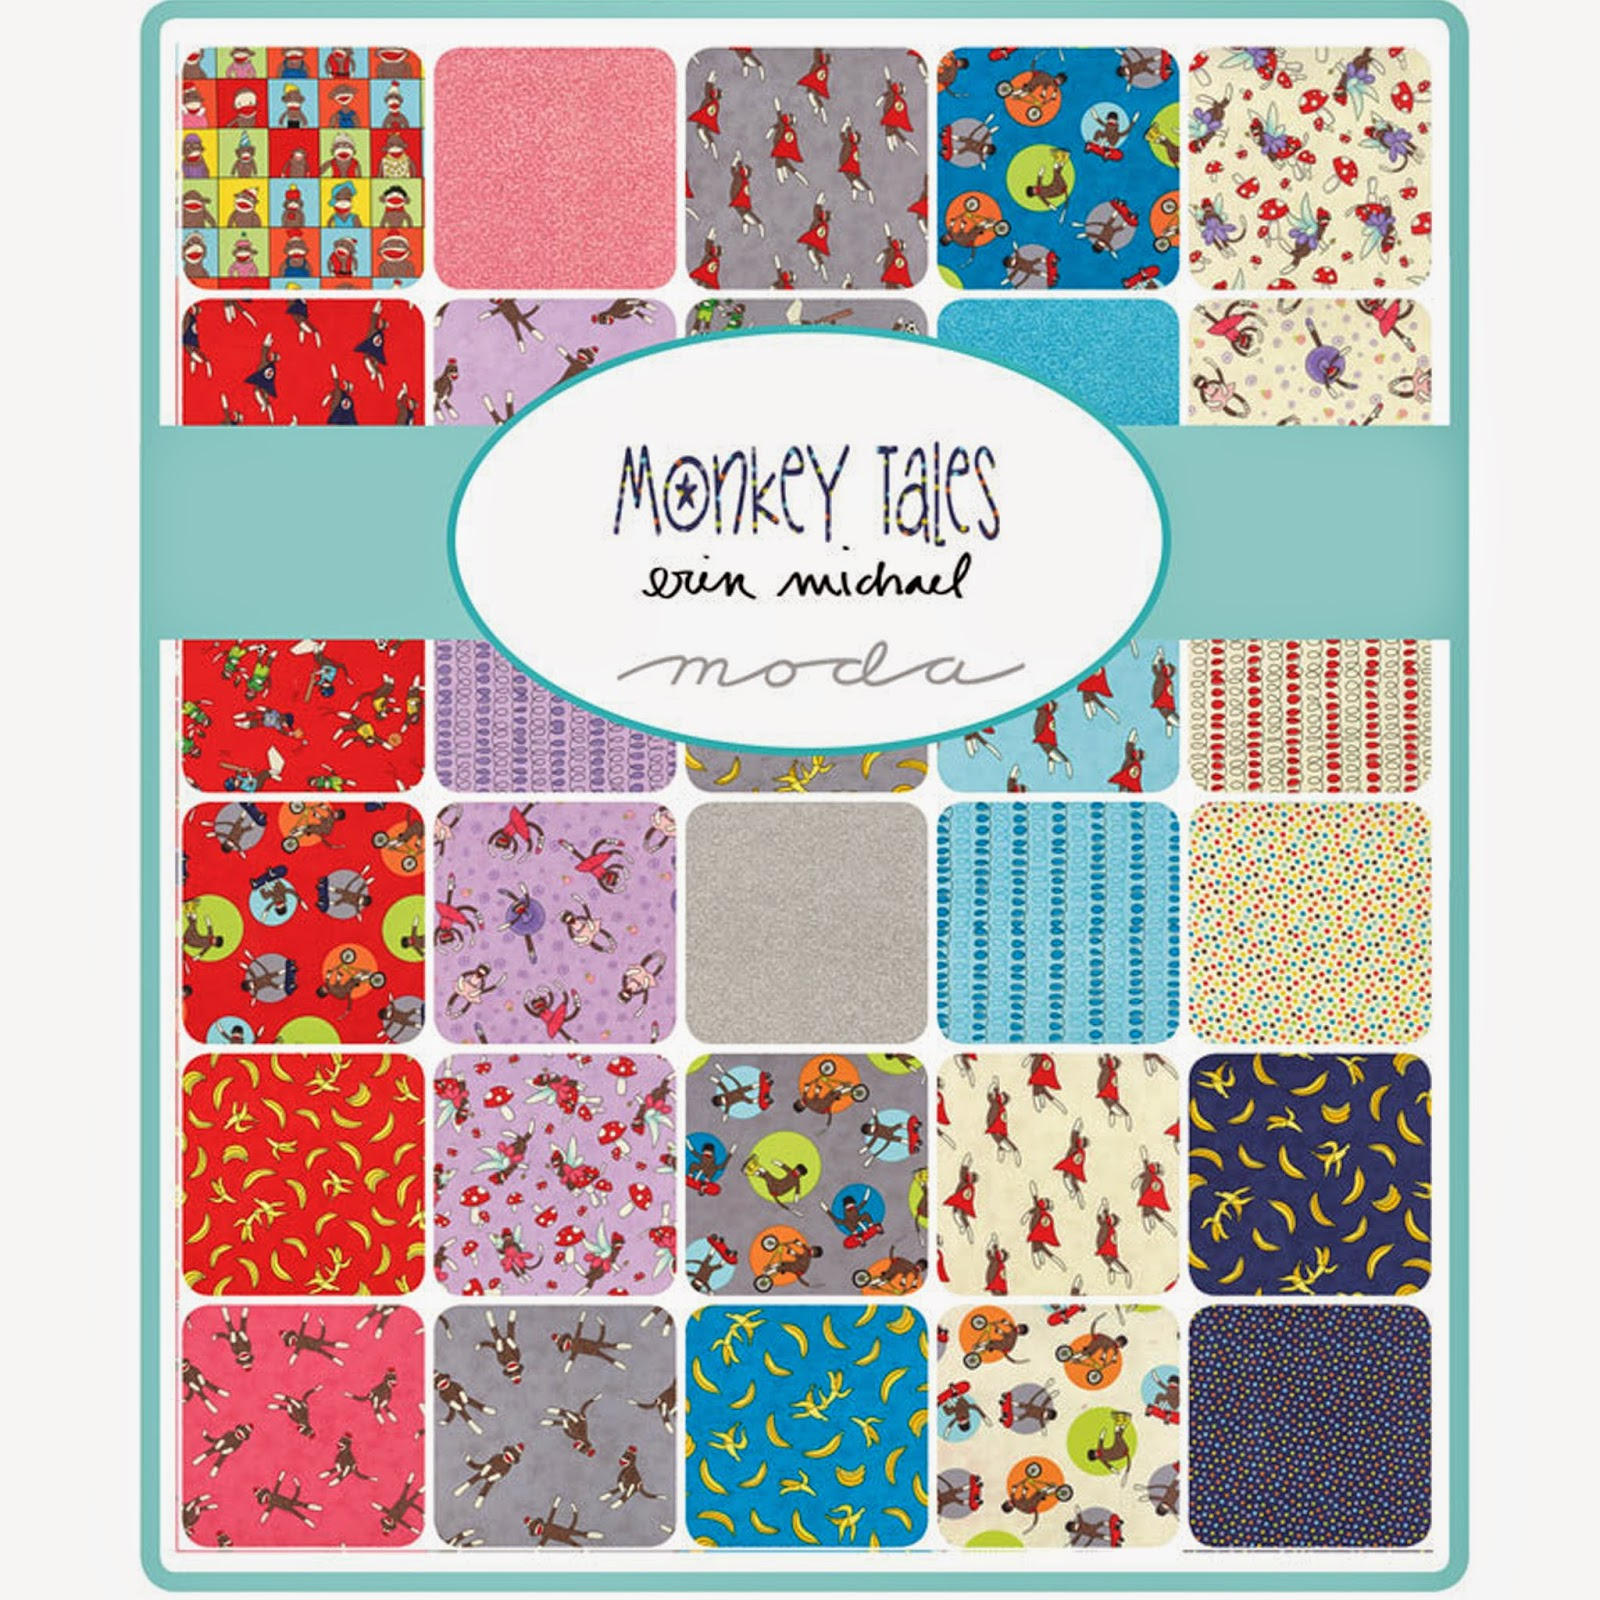 Moda MONKEY TALES Quilt Fabric by Erin Michael for Moda Fabrics